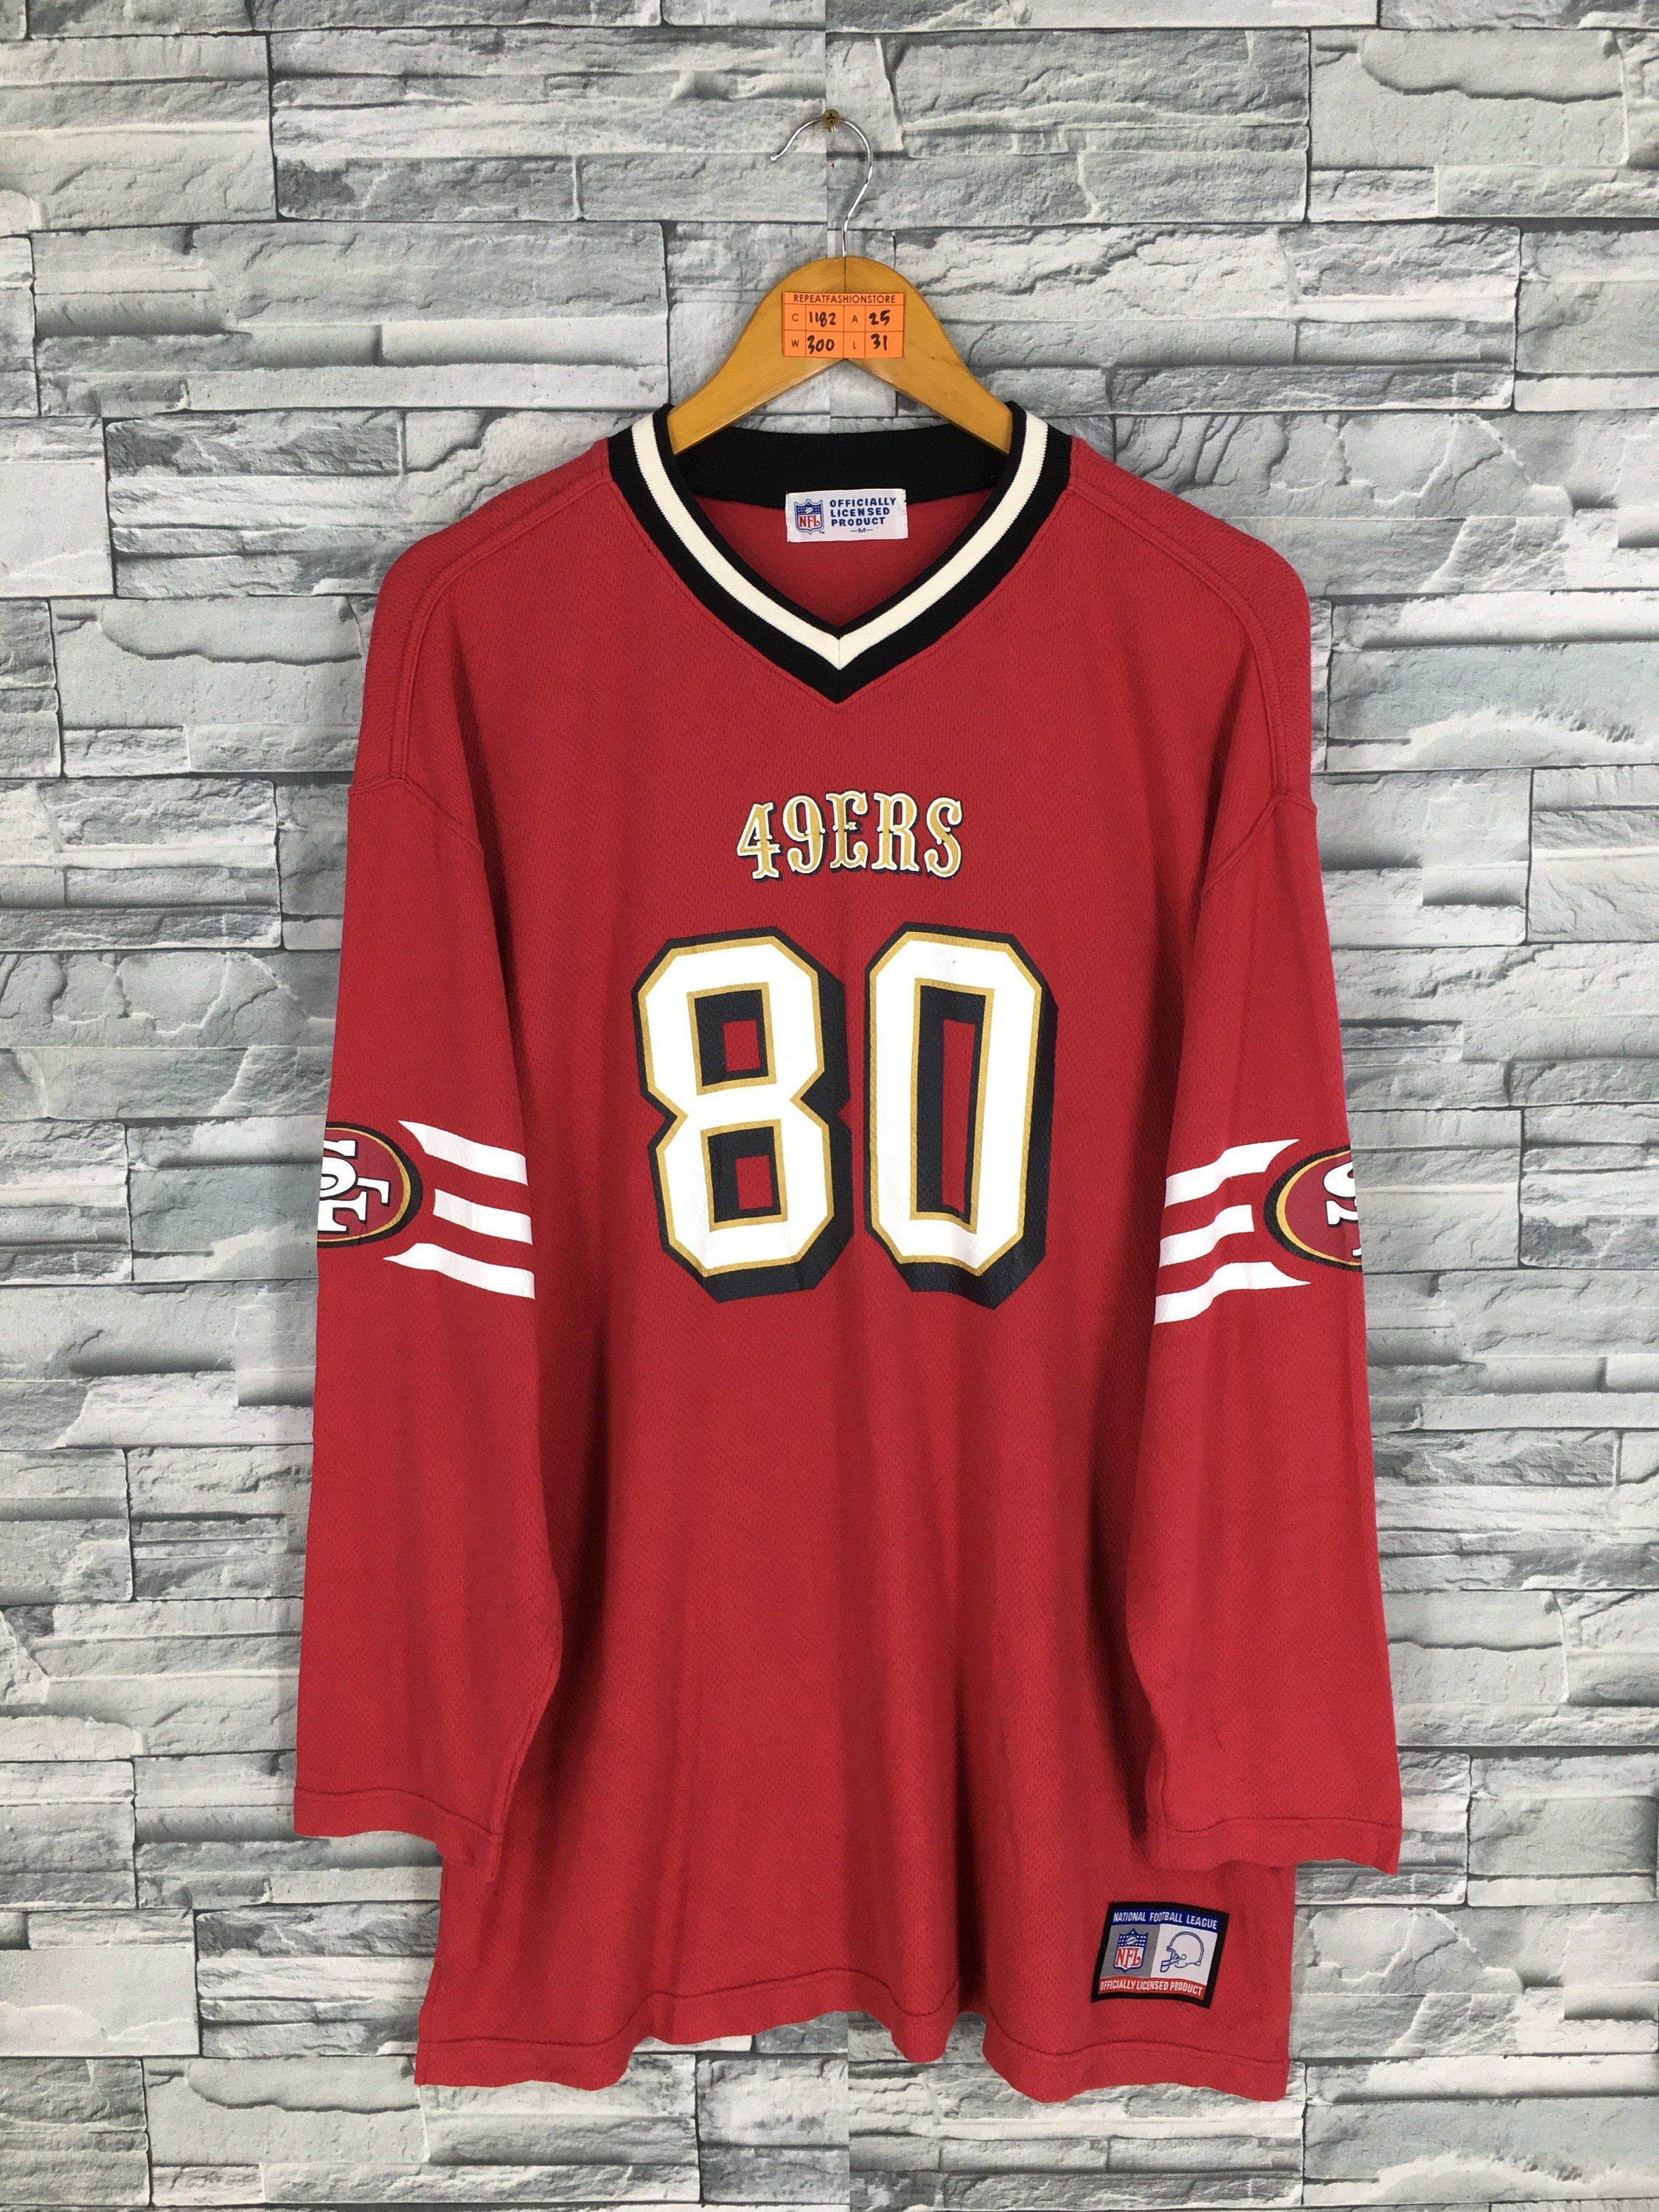 c7ade6612 Vintage San Francisco 49ERS Mens Jersey Medium #80 Jerry Rice 49ers NFL  American Rugby Football Sportswear Red Jersey Mens Size M by  REPEATFASHIONSTORE on ...